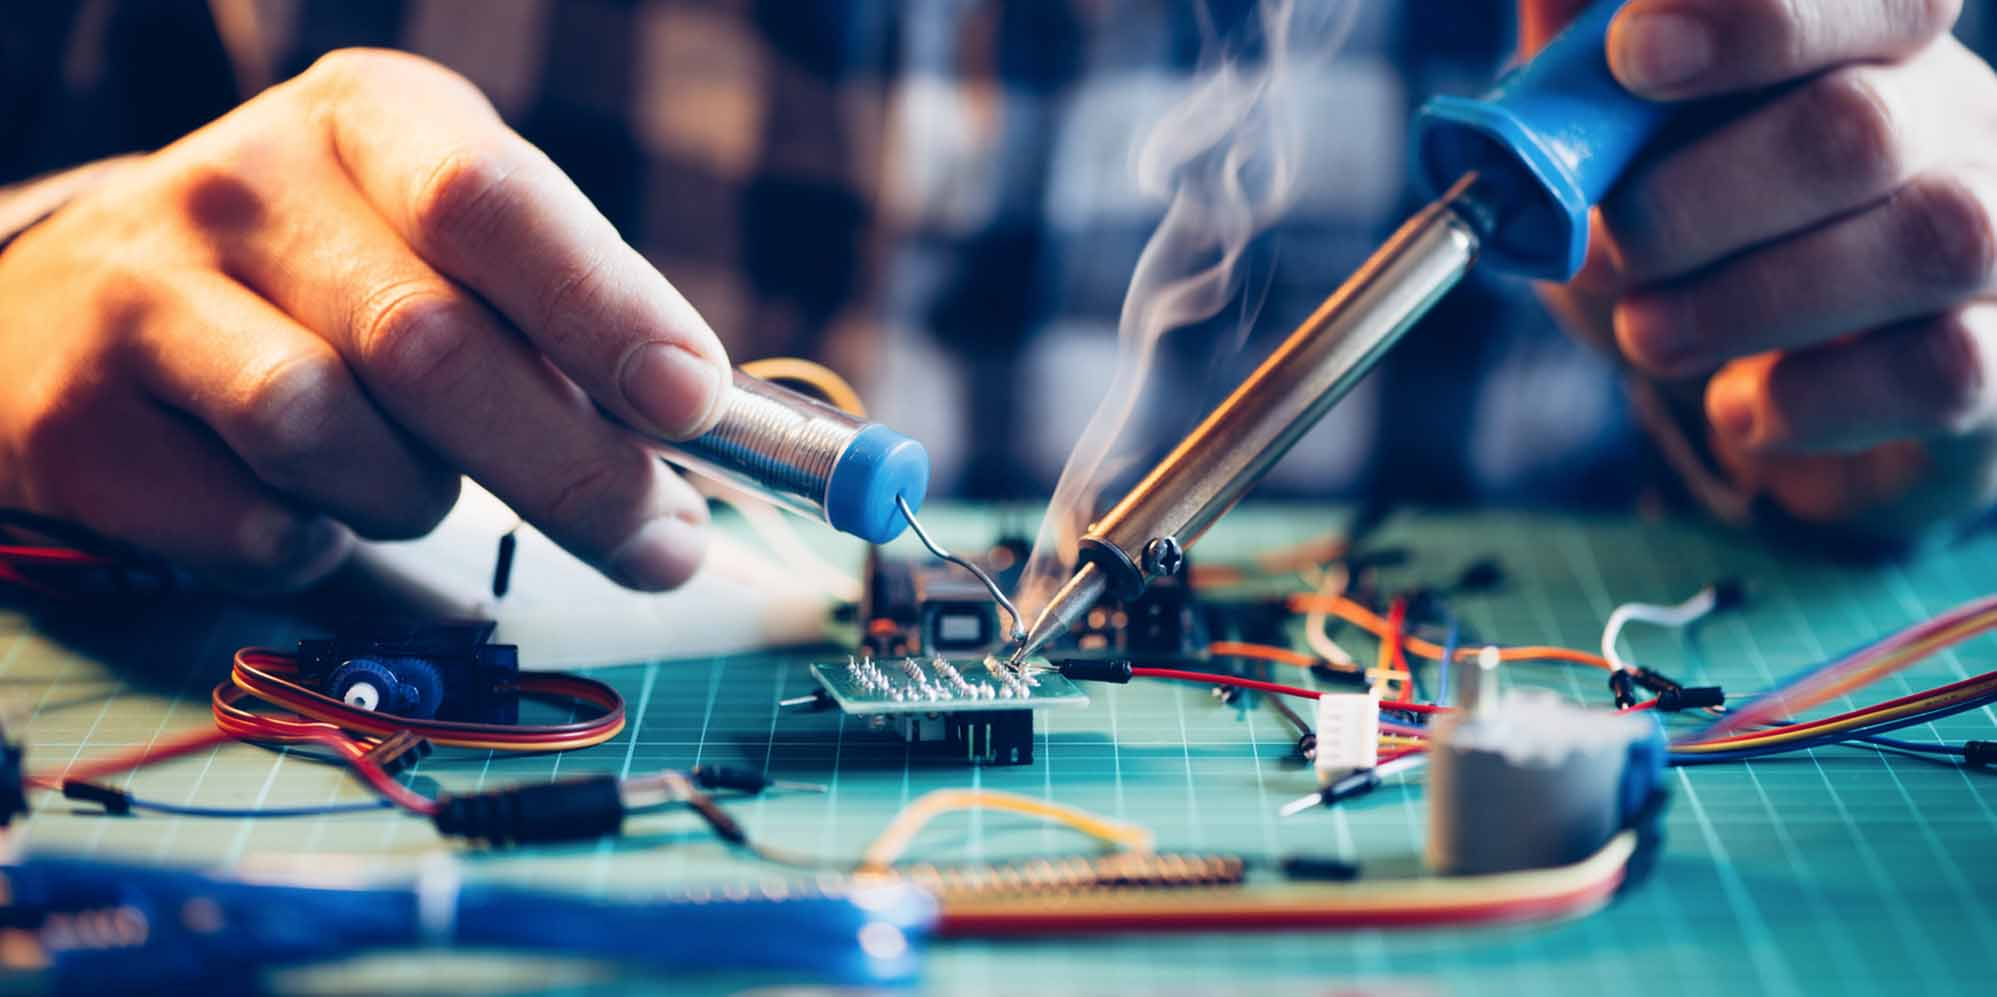 5 Tips to Select the Right Computer Repair Service - Forbes